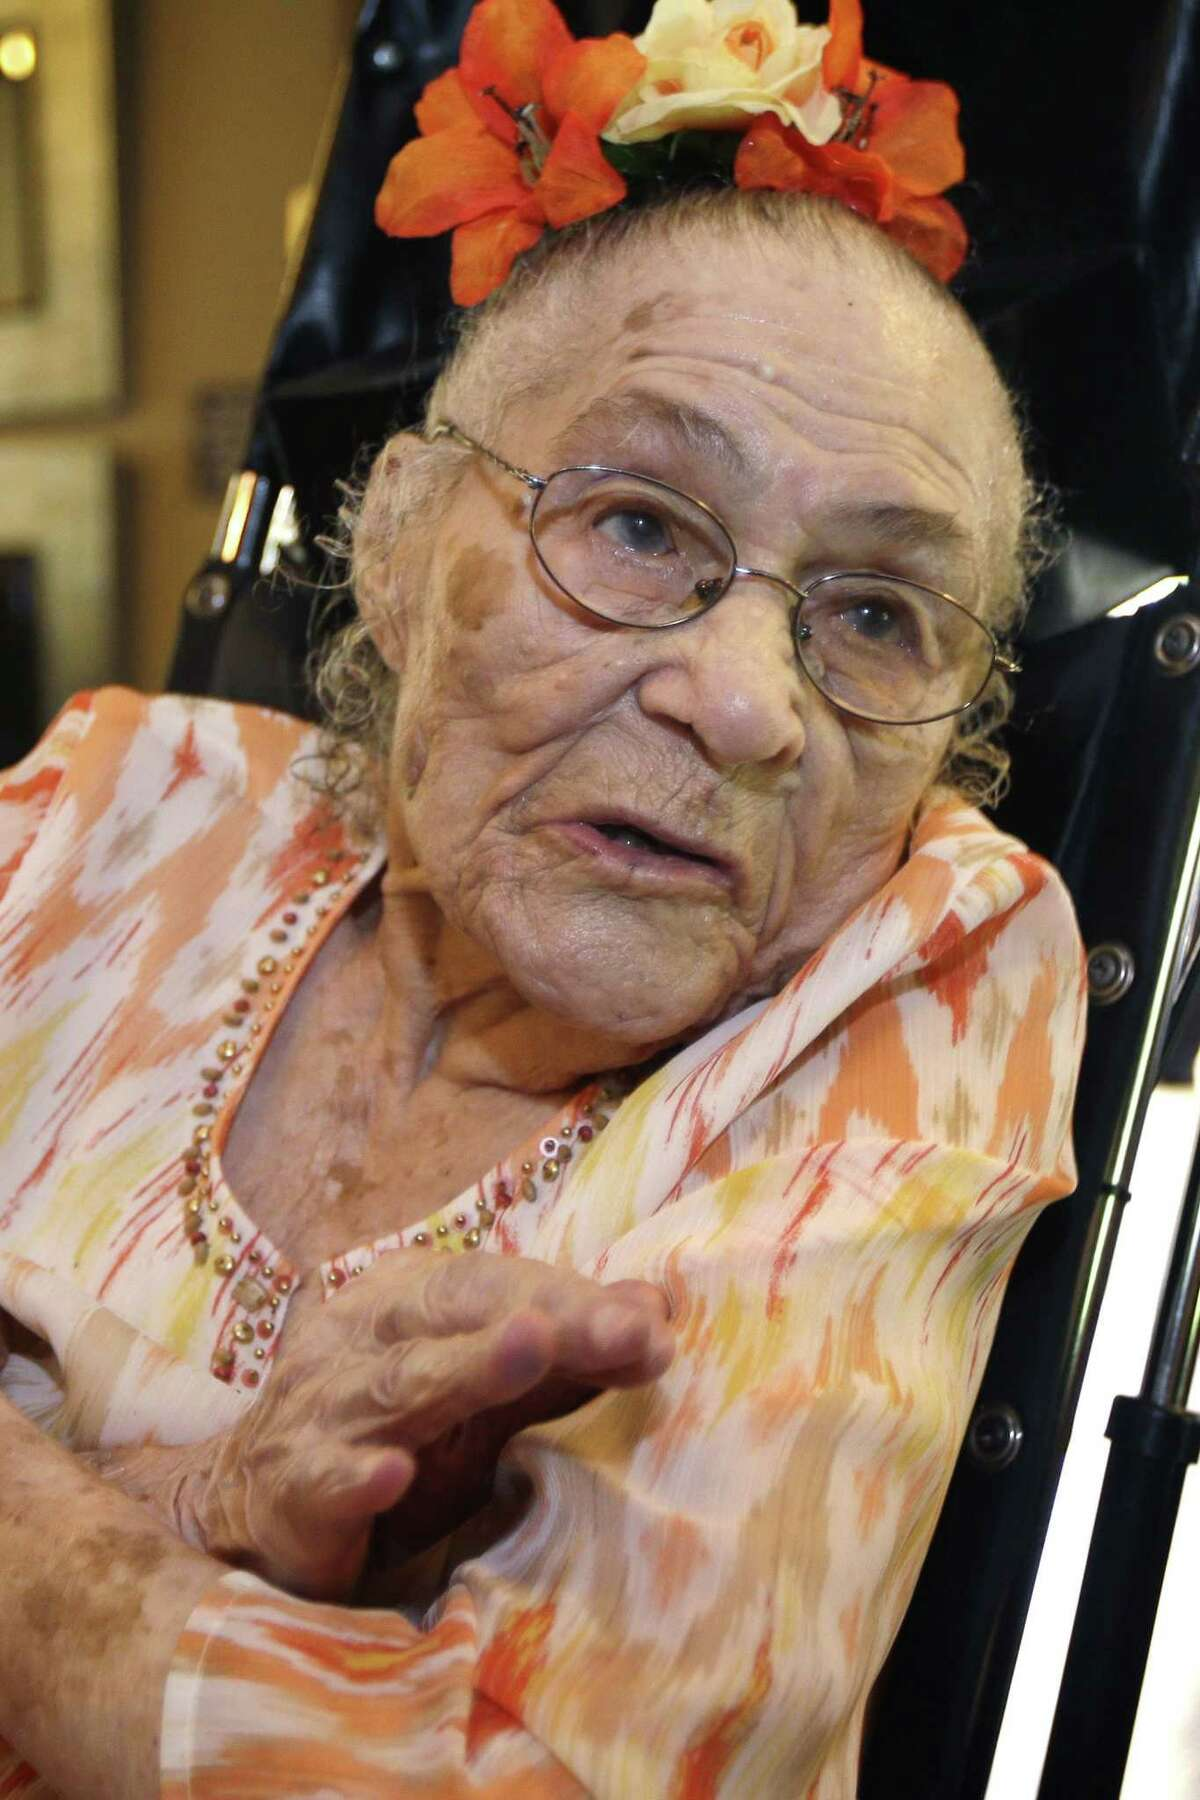 In this July 3, 2014, file photo, Gertrude Weaver poses at Silver Oaks Health and Rehabilitation Center in Camden, Ark., a day before her 116th birthday. Just days after becoming the world's oldest documented person, 116-year-old Gertrude Weaver died Monday in Arkansas.